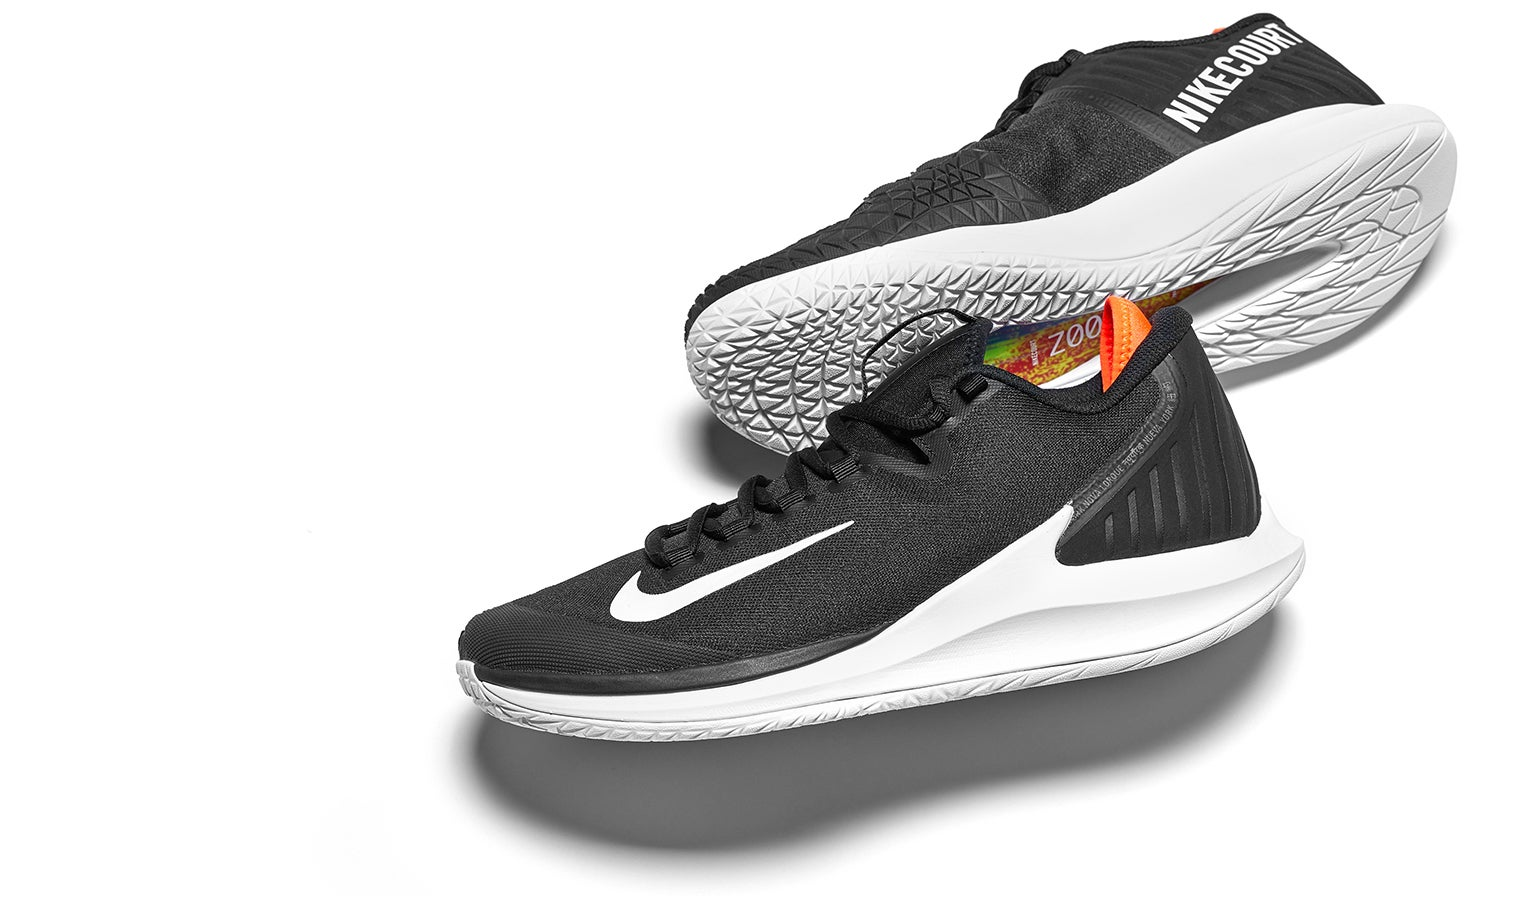 Llamarada simplemente Hospitalidad  Tennis Warehouse - Nike Court Air Zoom Zero Men's Shoe Review